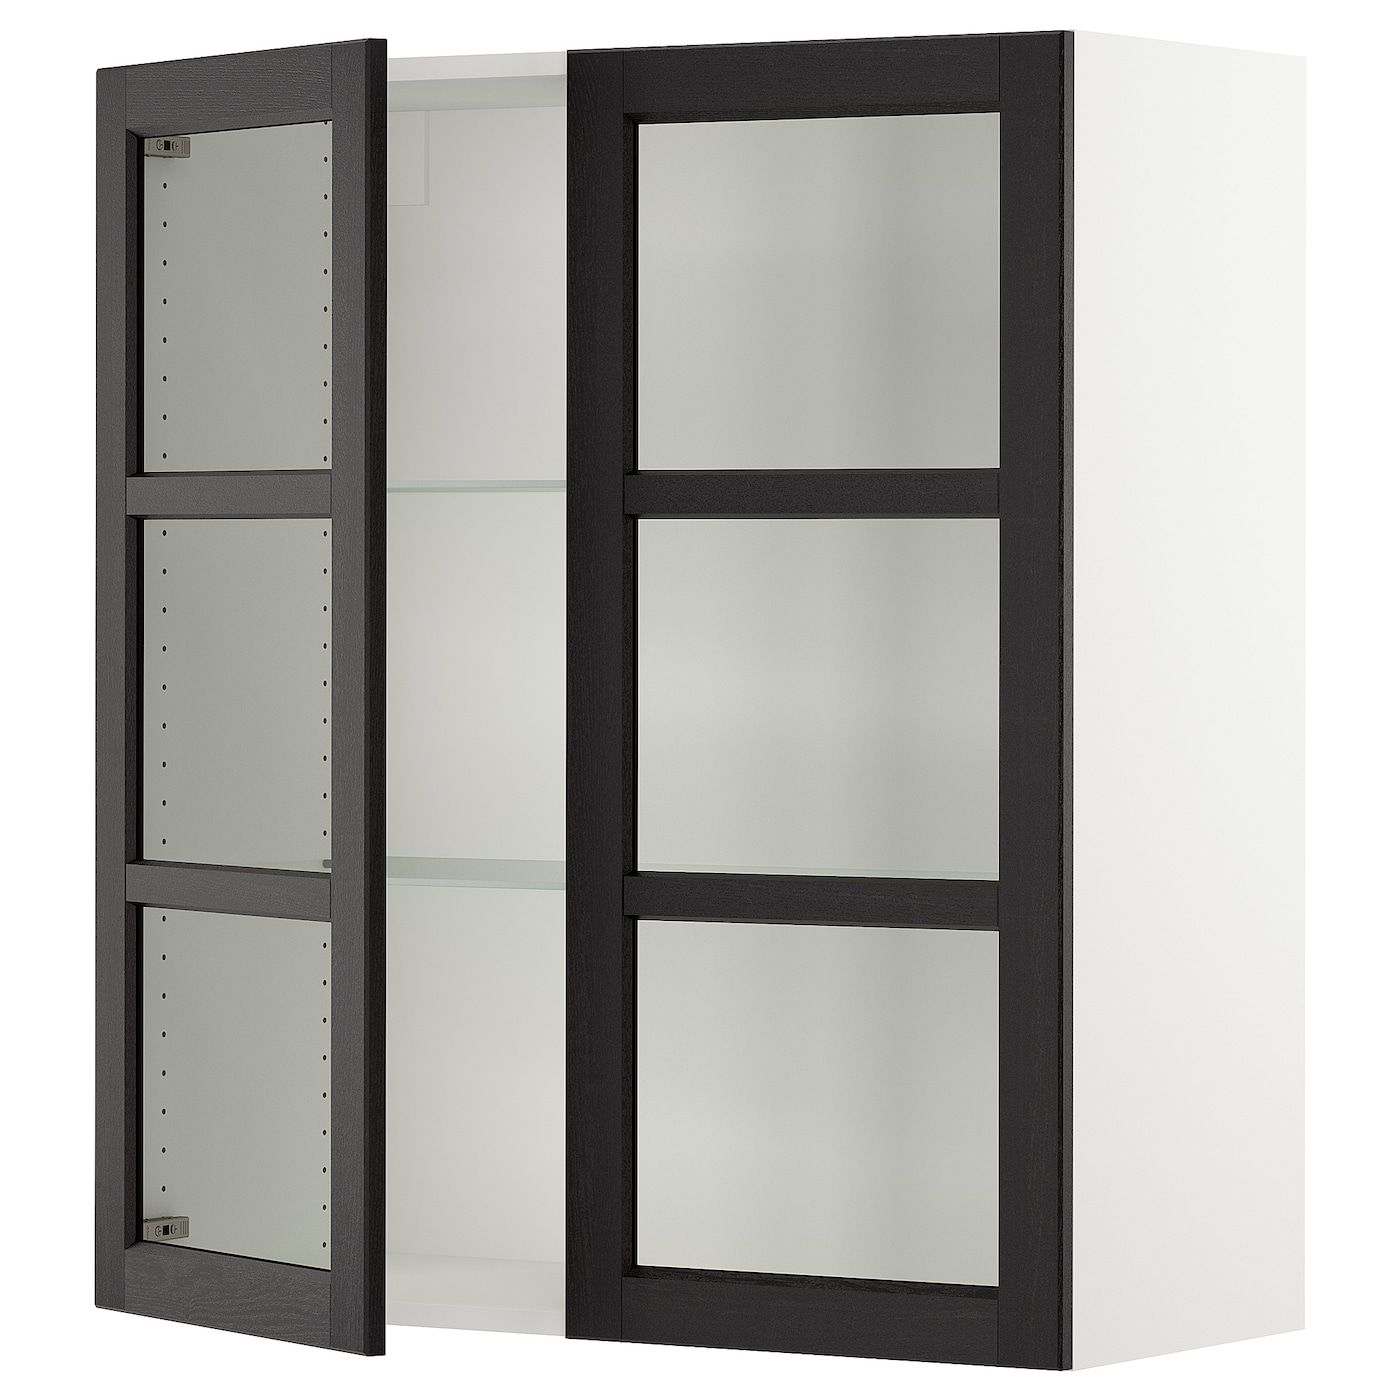 Ikea Sektion Wall Cabinet With 2 Glass Doors White Lerhyttan Black Stained You Can Customize Spacing As Needed Because The In 2020 Wall Cabinet Glass Door Ikea